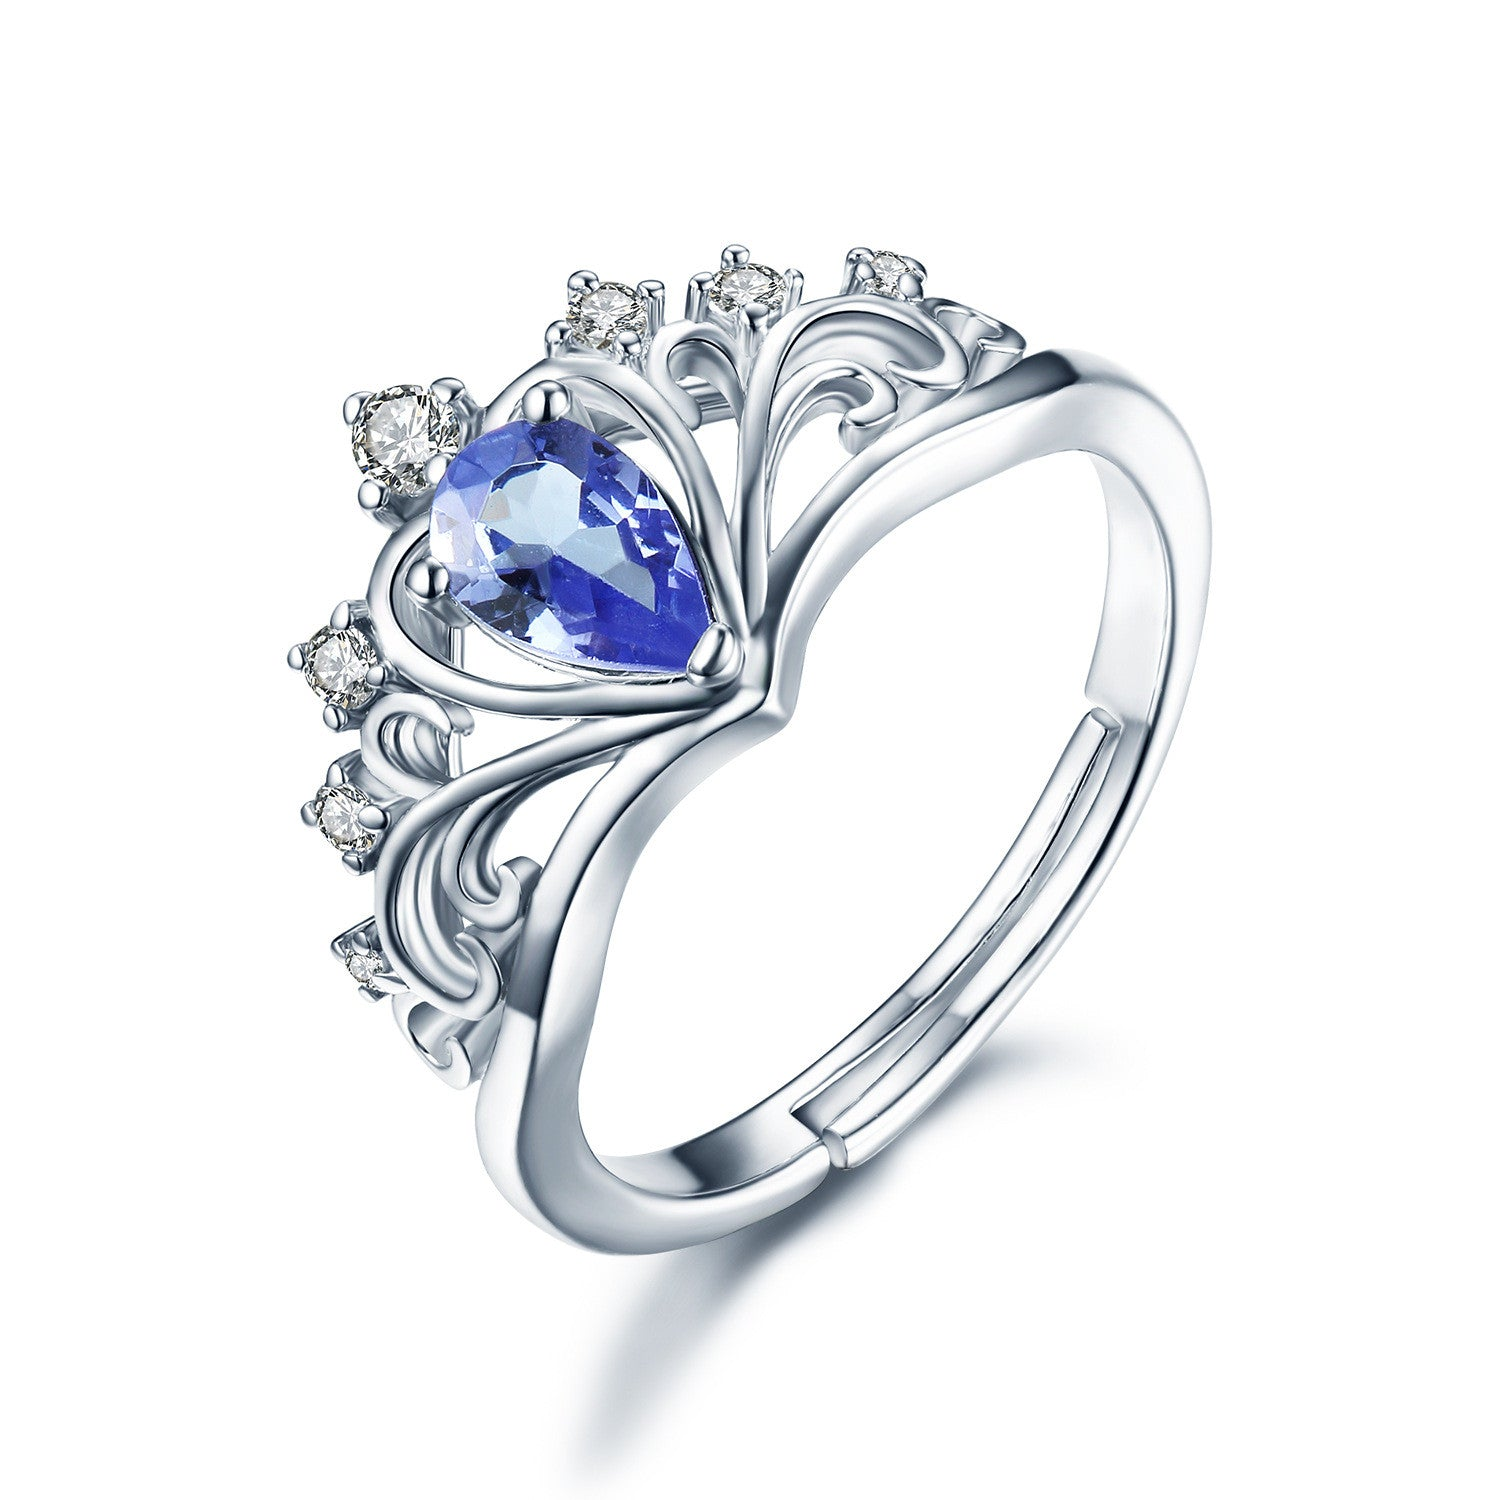 0 35ct Natural Tanzanite December Birthstone Crown Ring